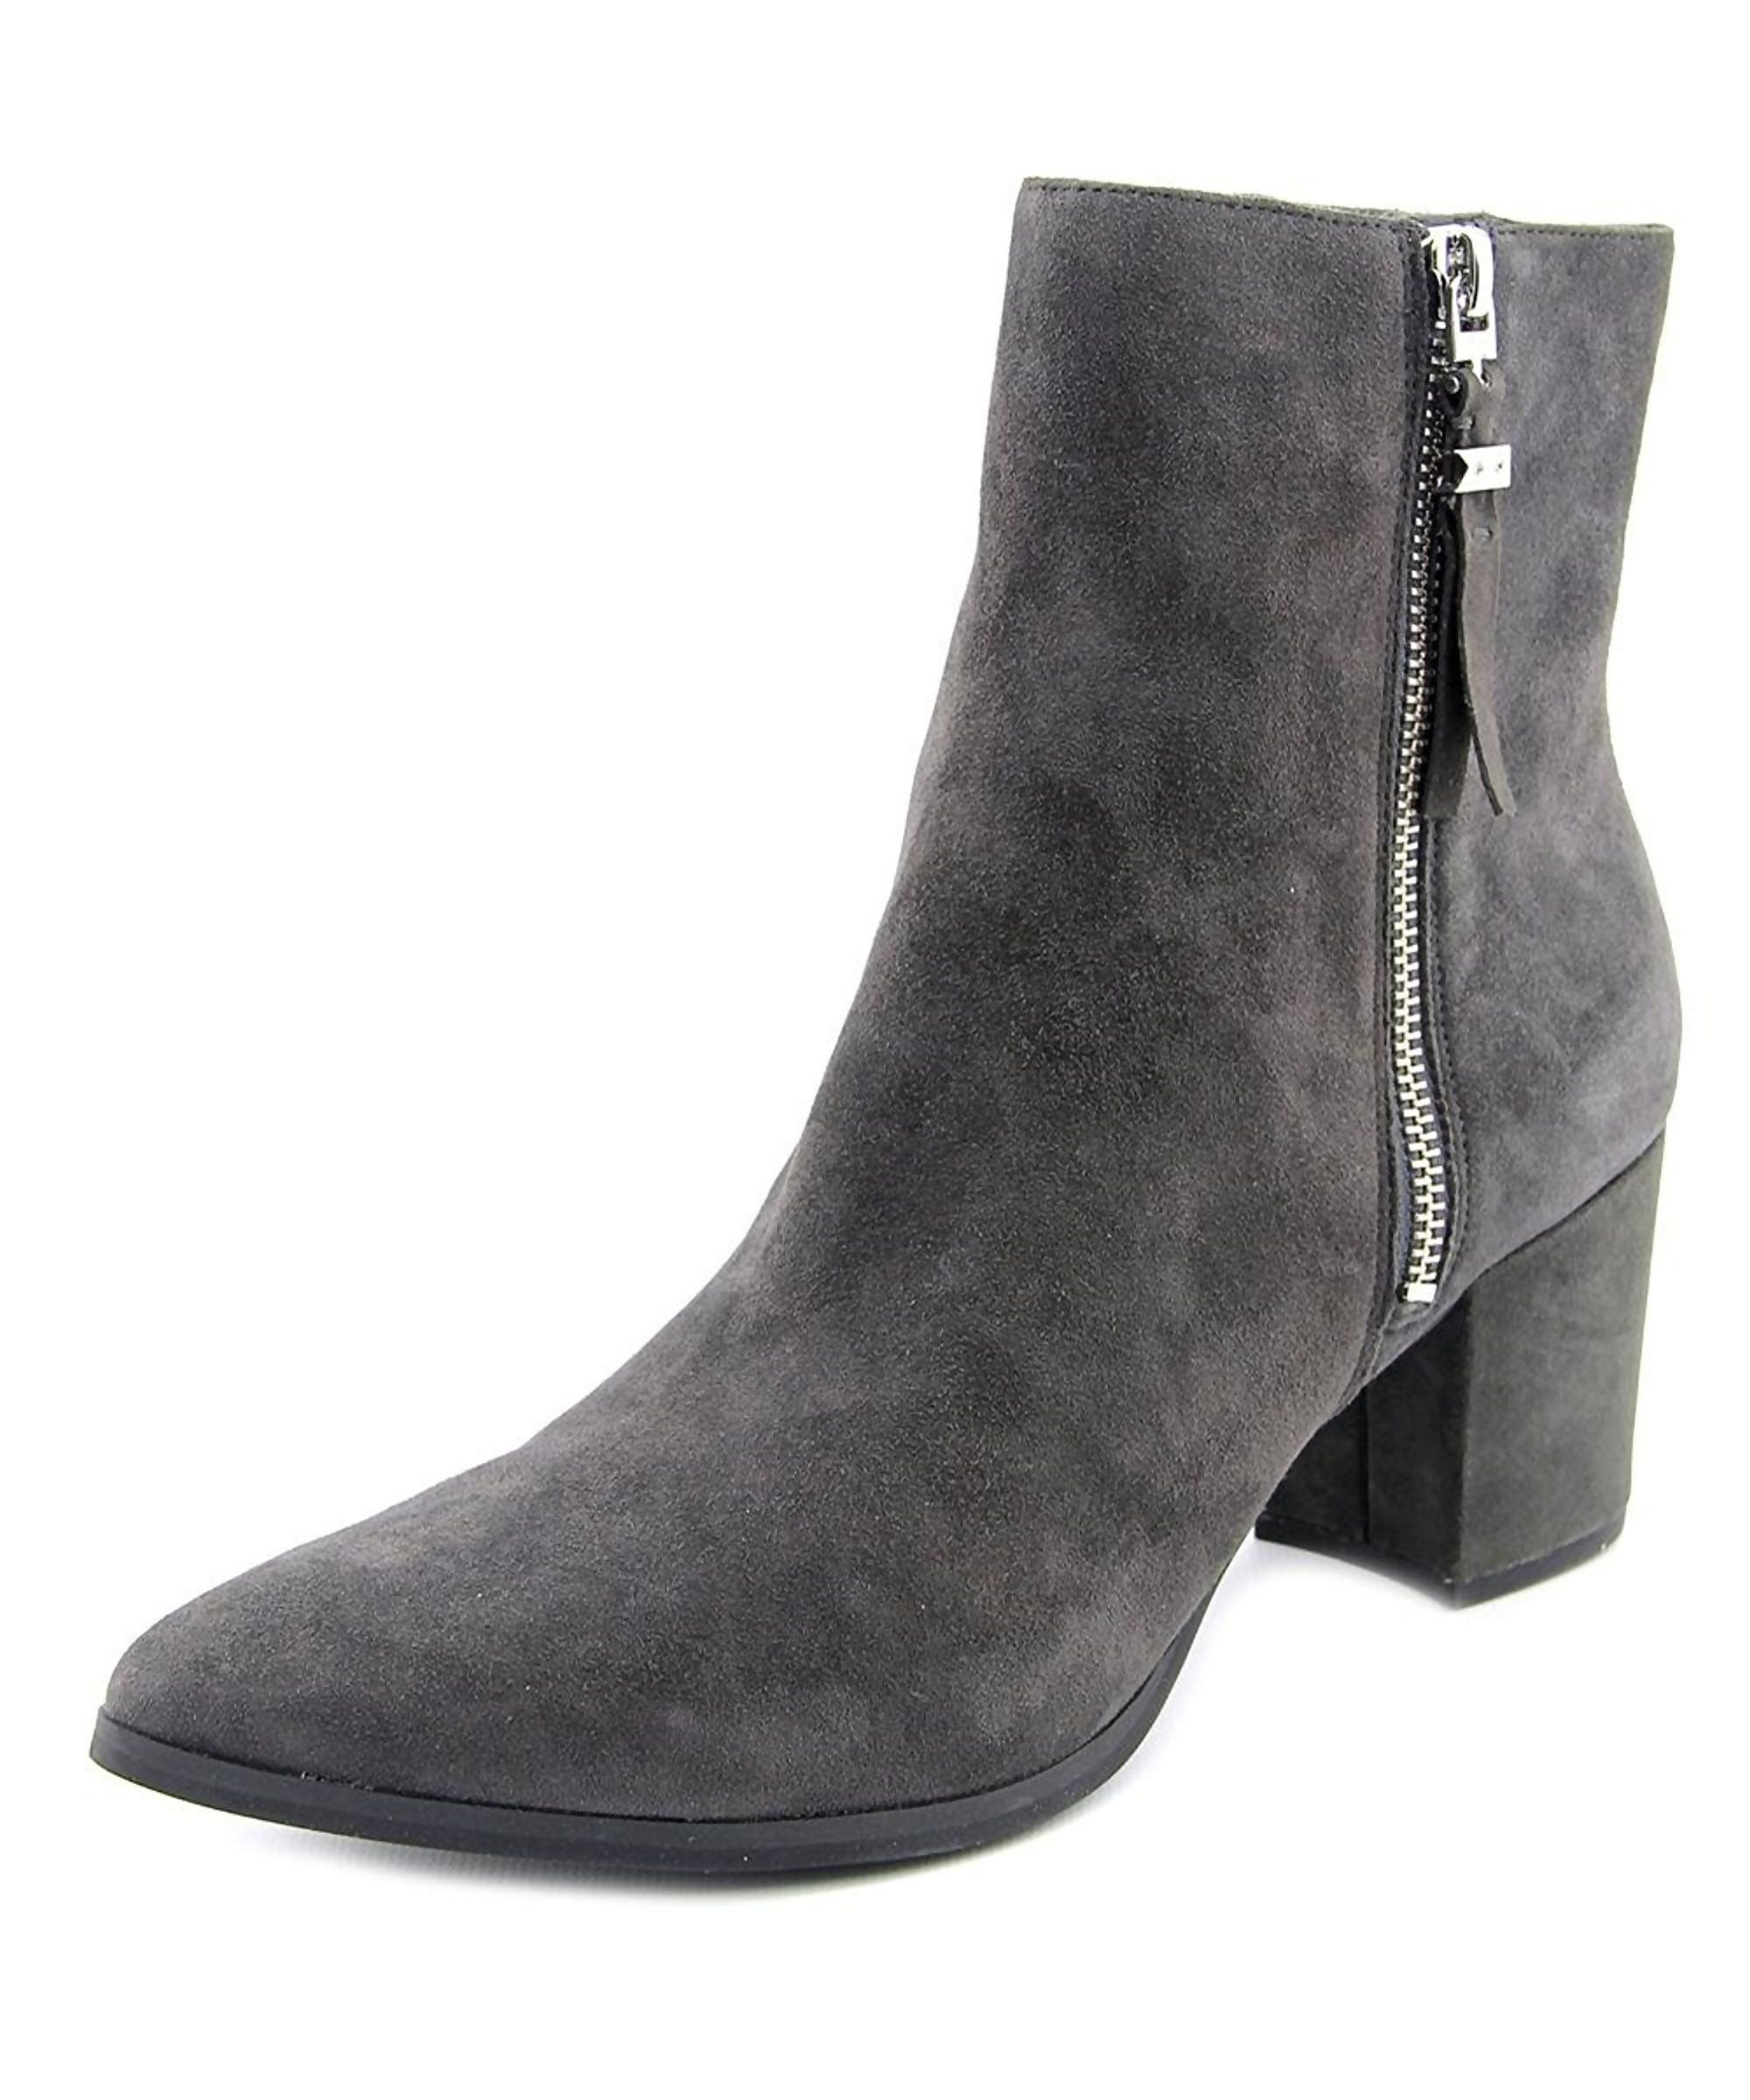 Michael Kors Grey Leather Boots bgT6tt1O